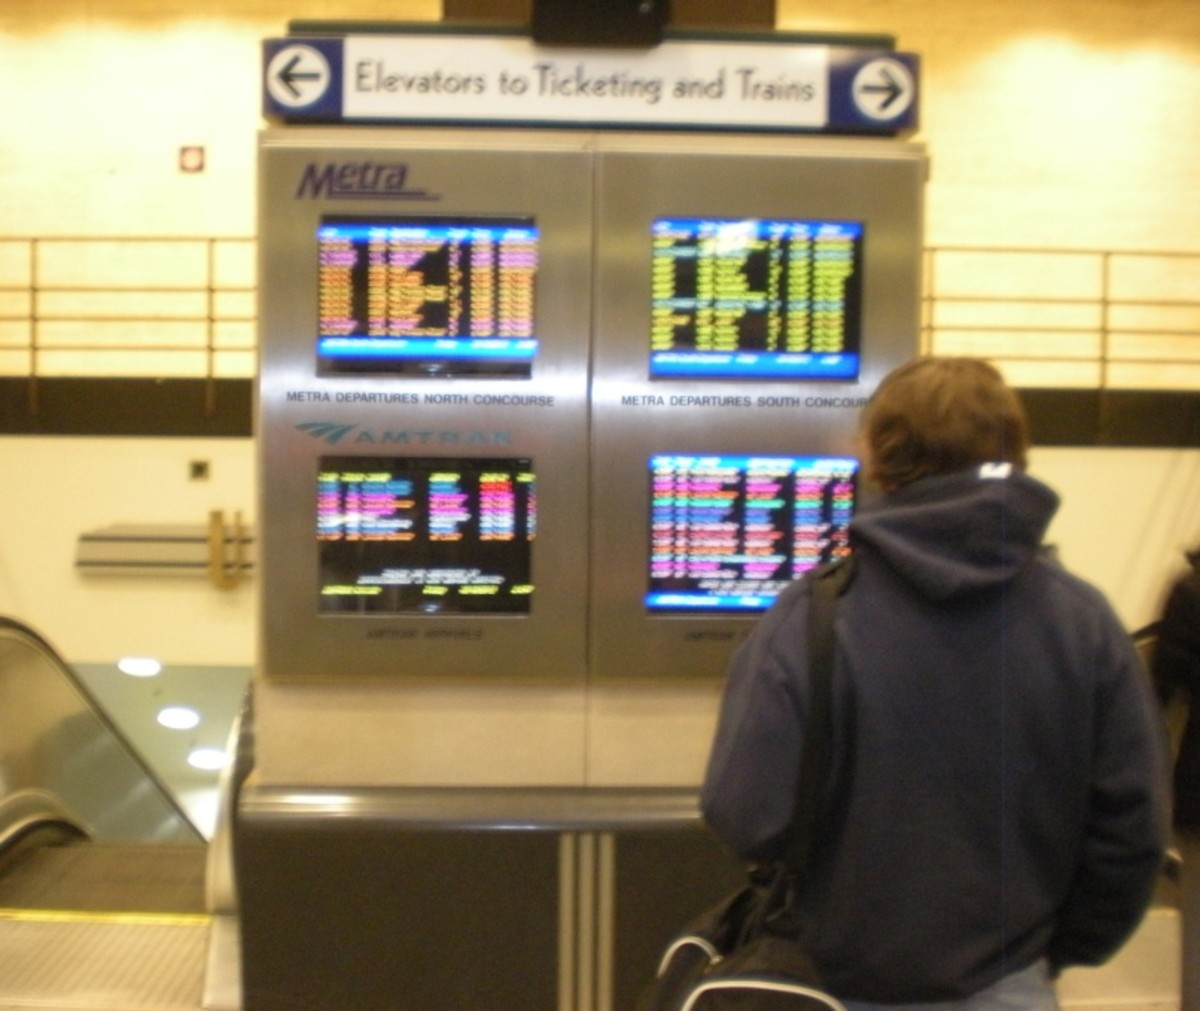 Amtrak and Metra Arrival/Departure information screens at Union Station's Canal Street entrance.